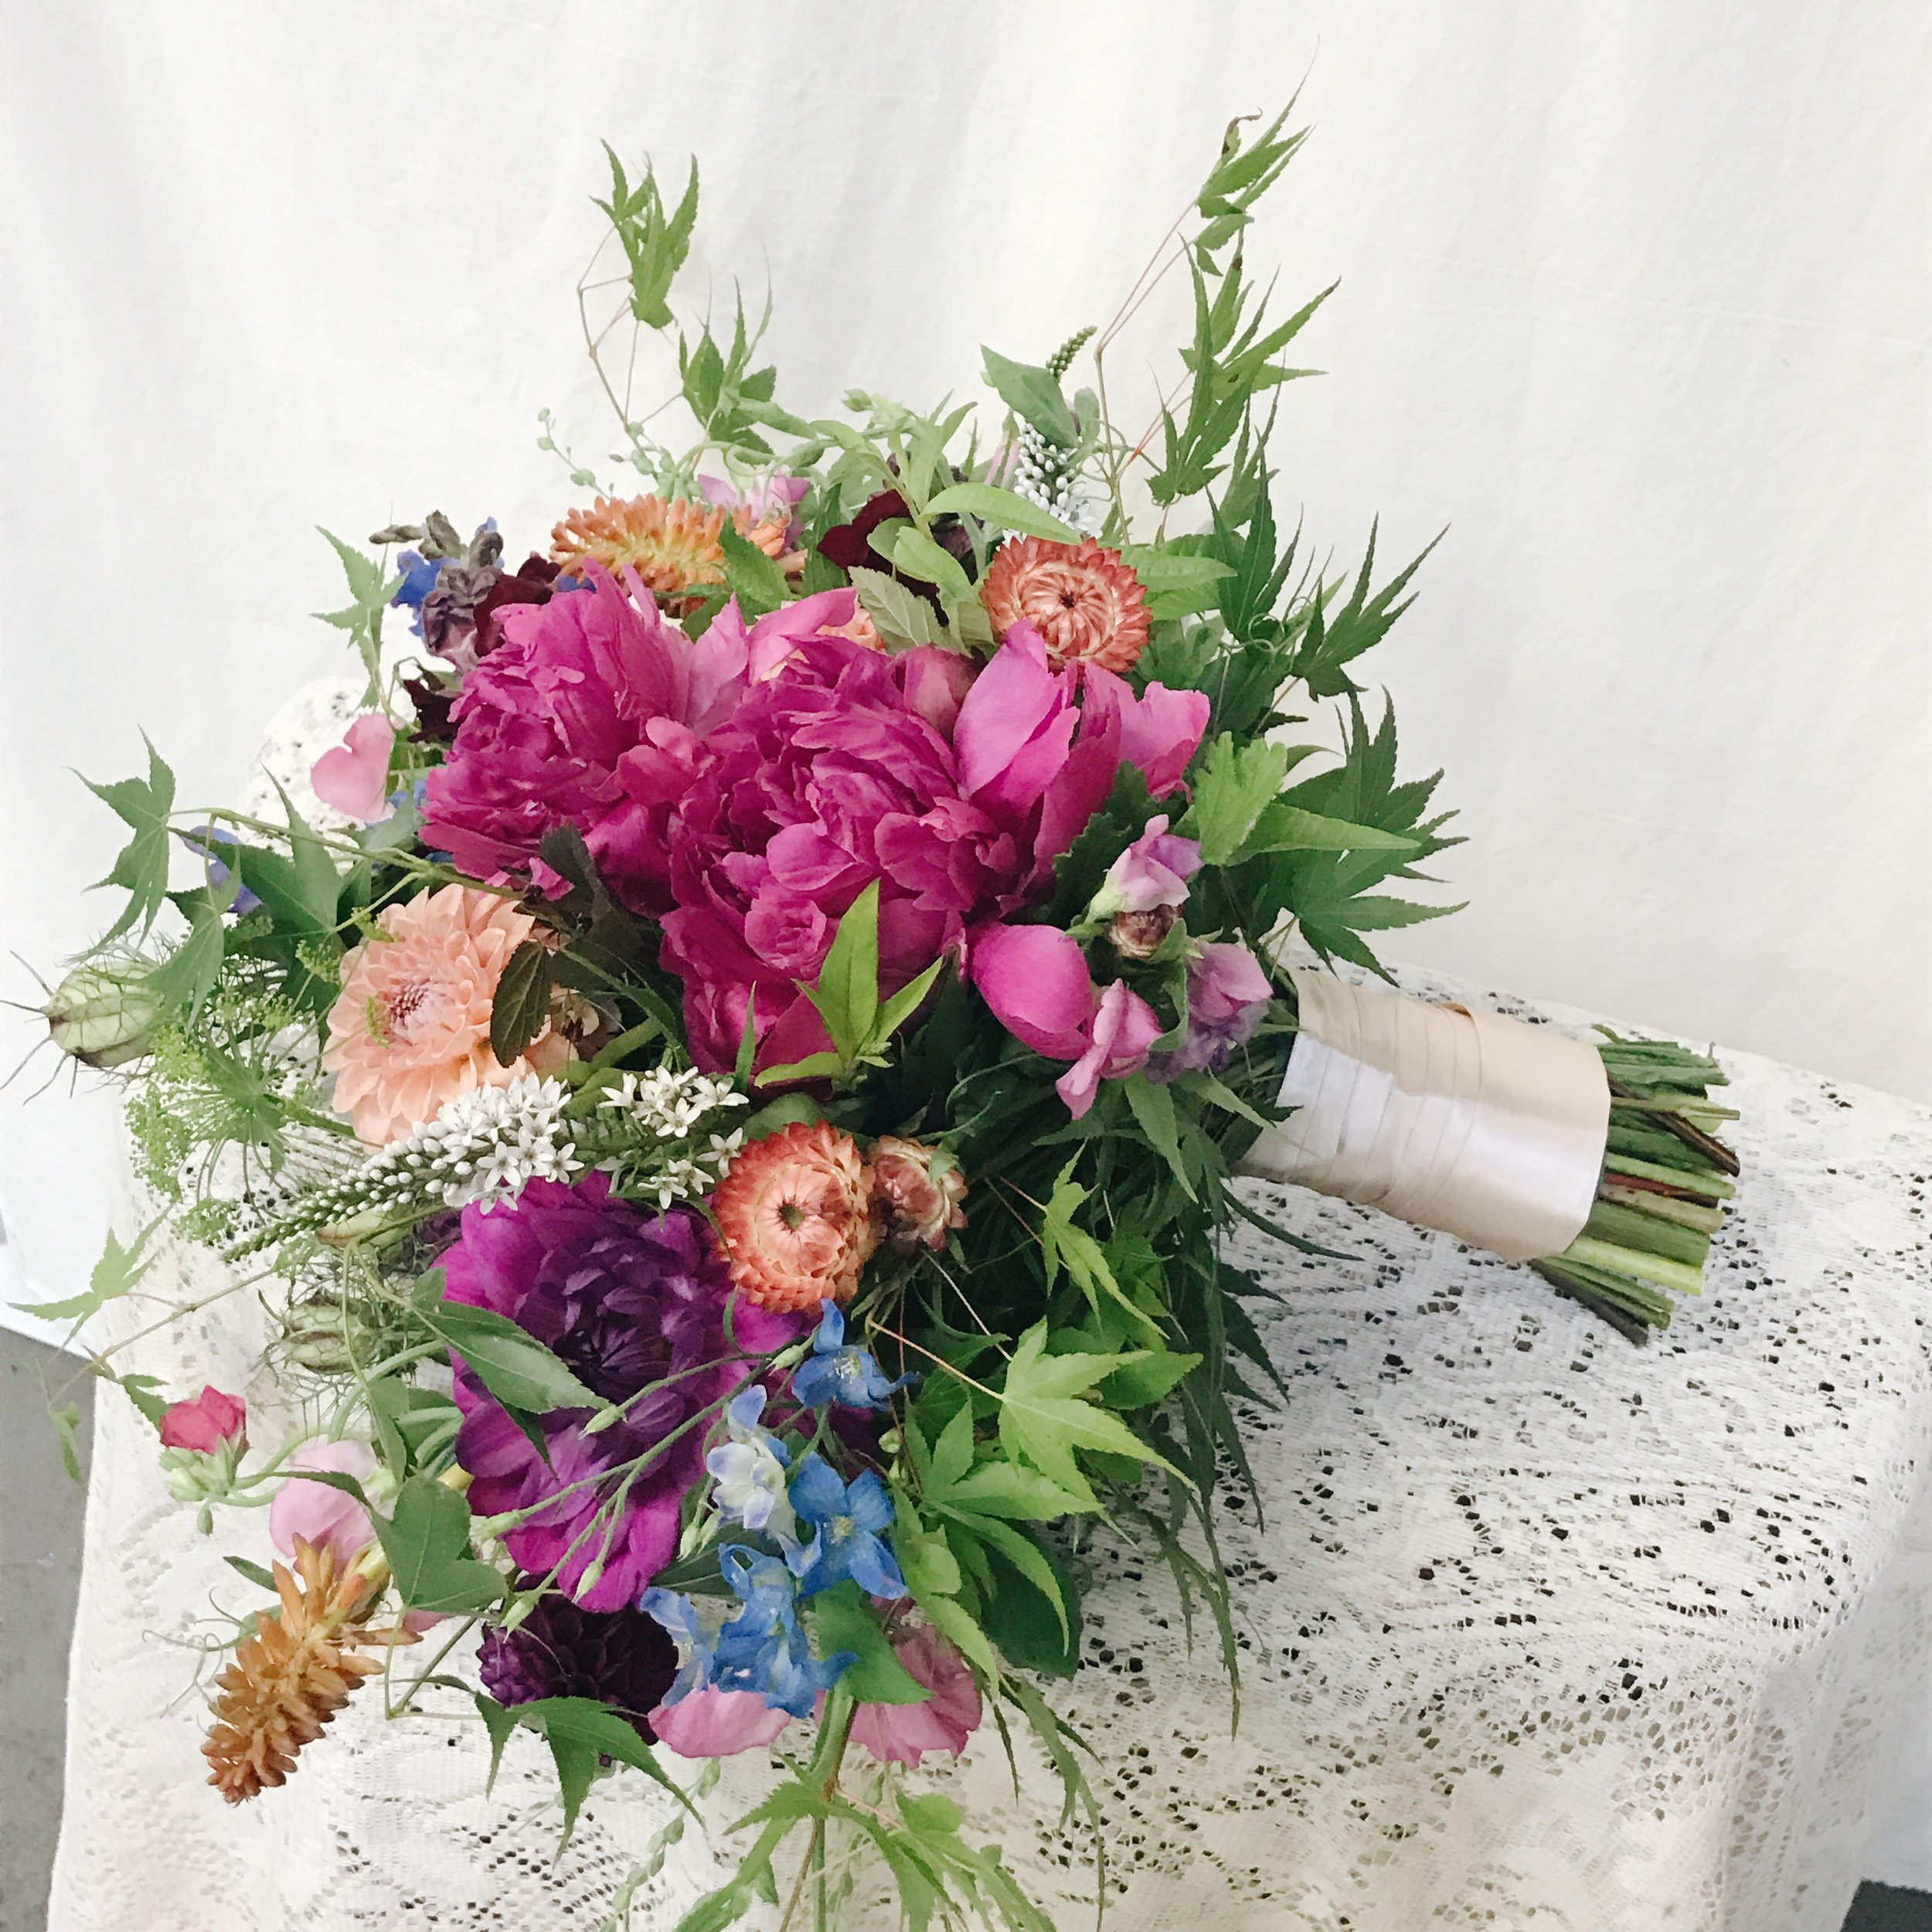 Love & Luster Floral Design Local Bridal Bouquet with Pink Peonies, Orange and Peach Dahlias